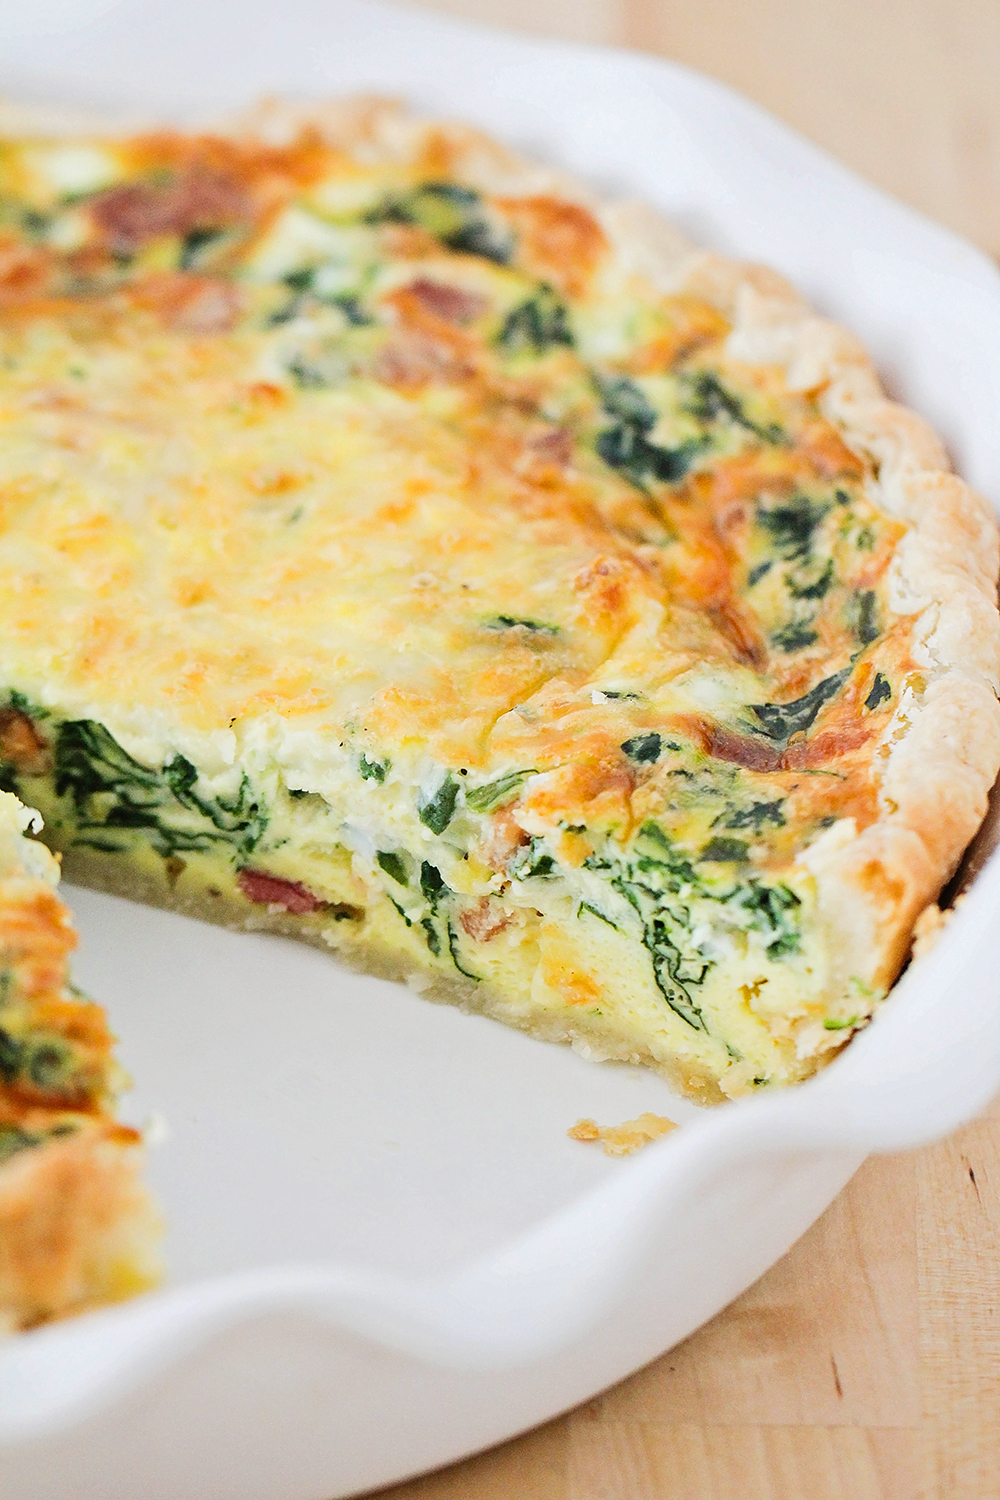 This savory and cheesy spinach and bacon quiche is so delicious, and easy to make!